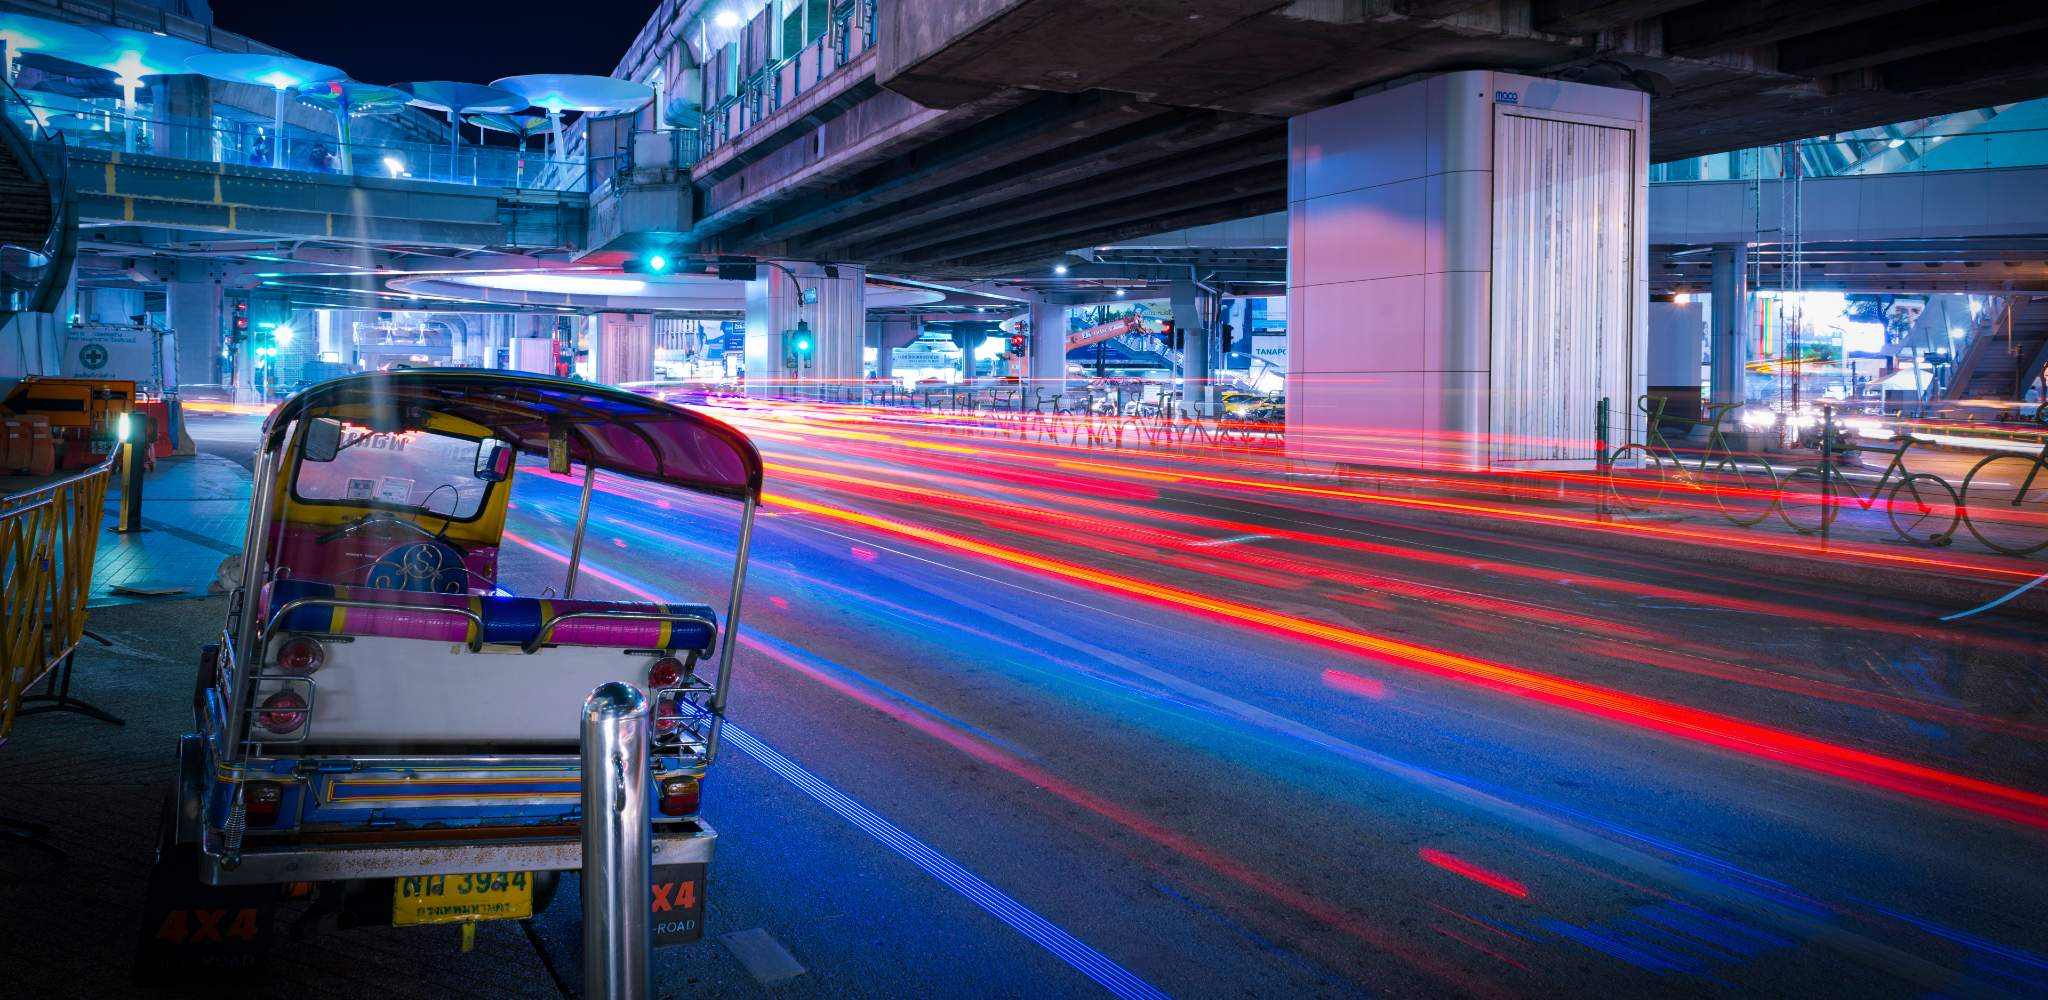 Tuk tuk along the road in Bangkok during the evening, picture taken with long shutter speed.